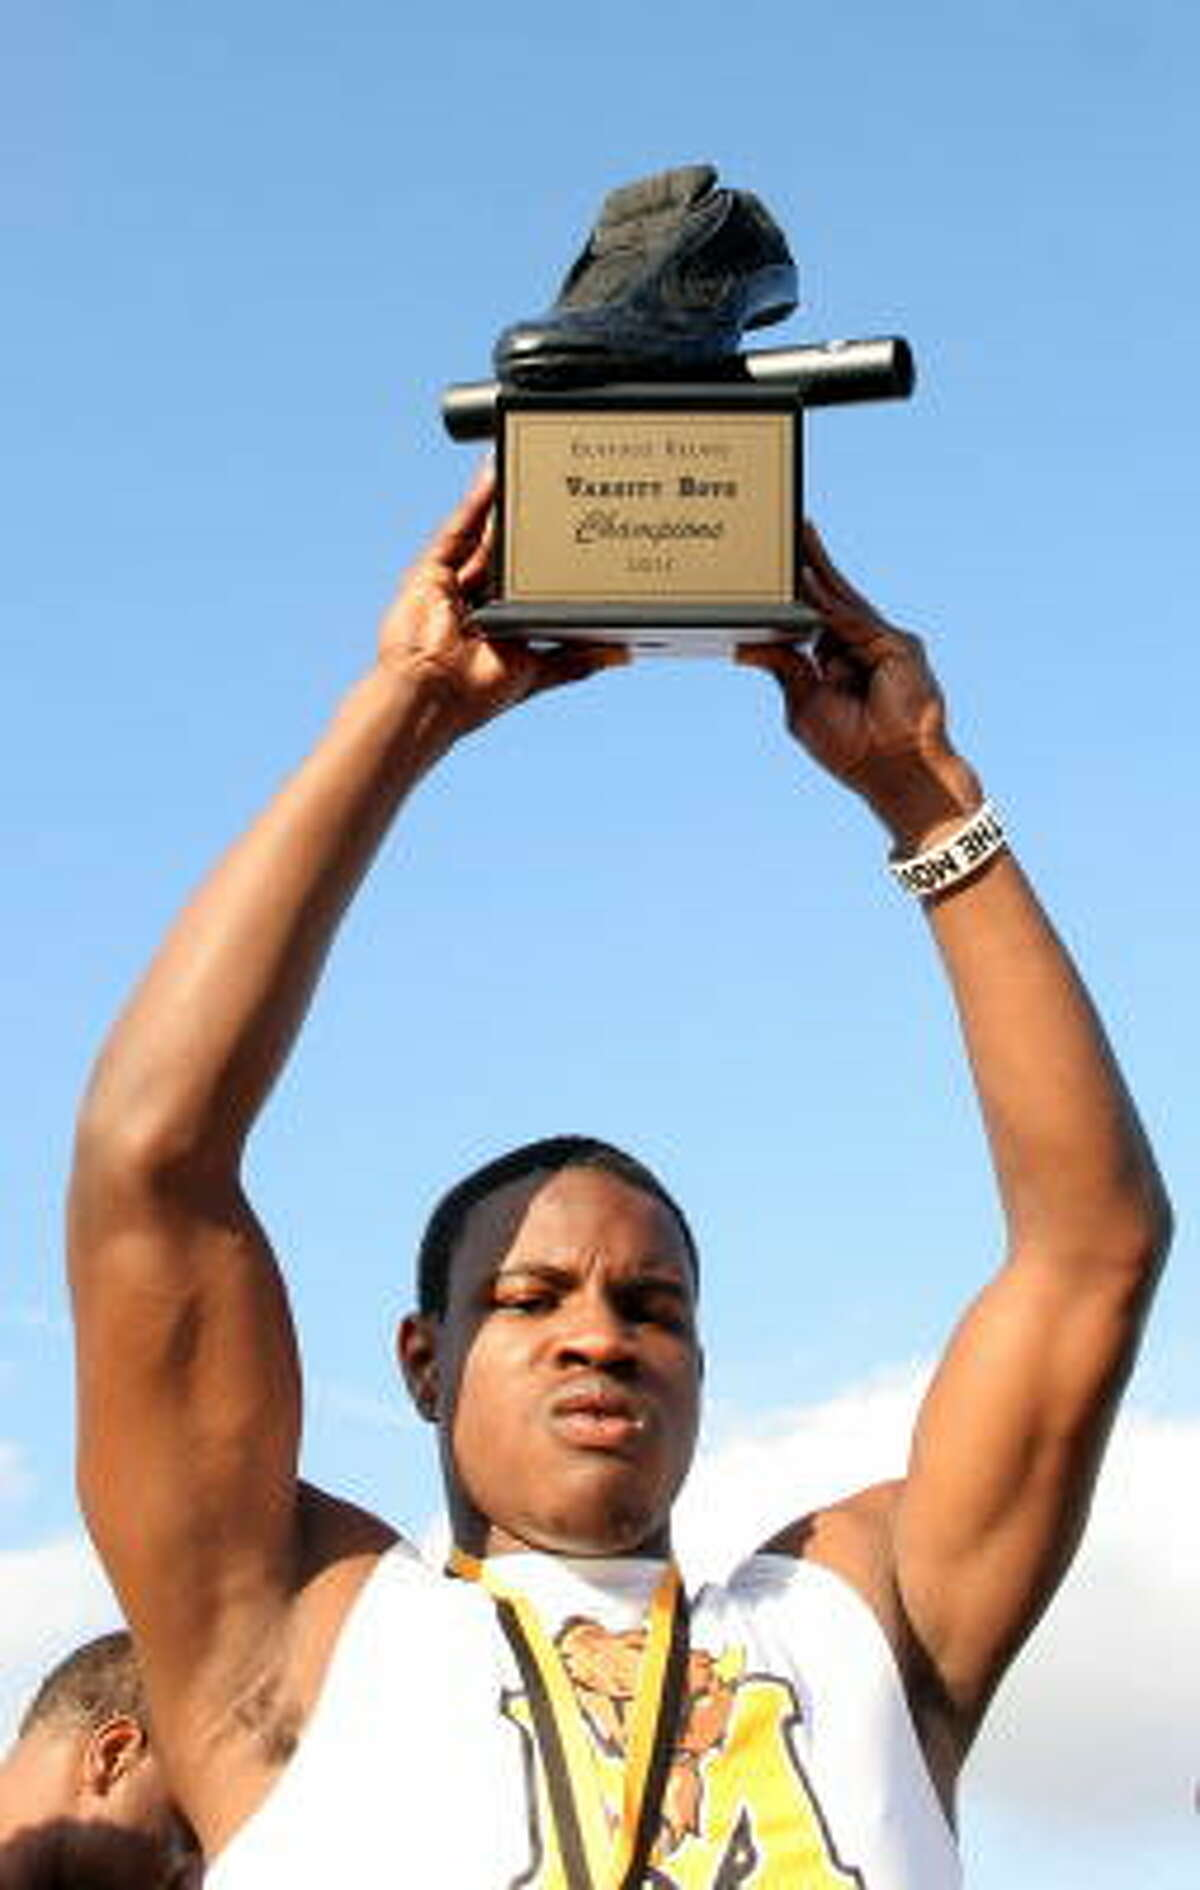 Marshall's Tylor White holds up the team title award.